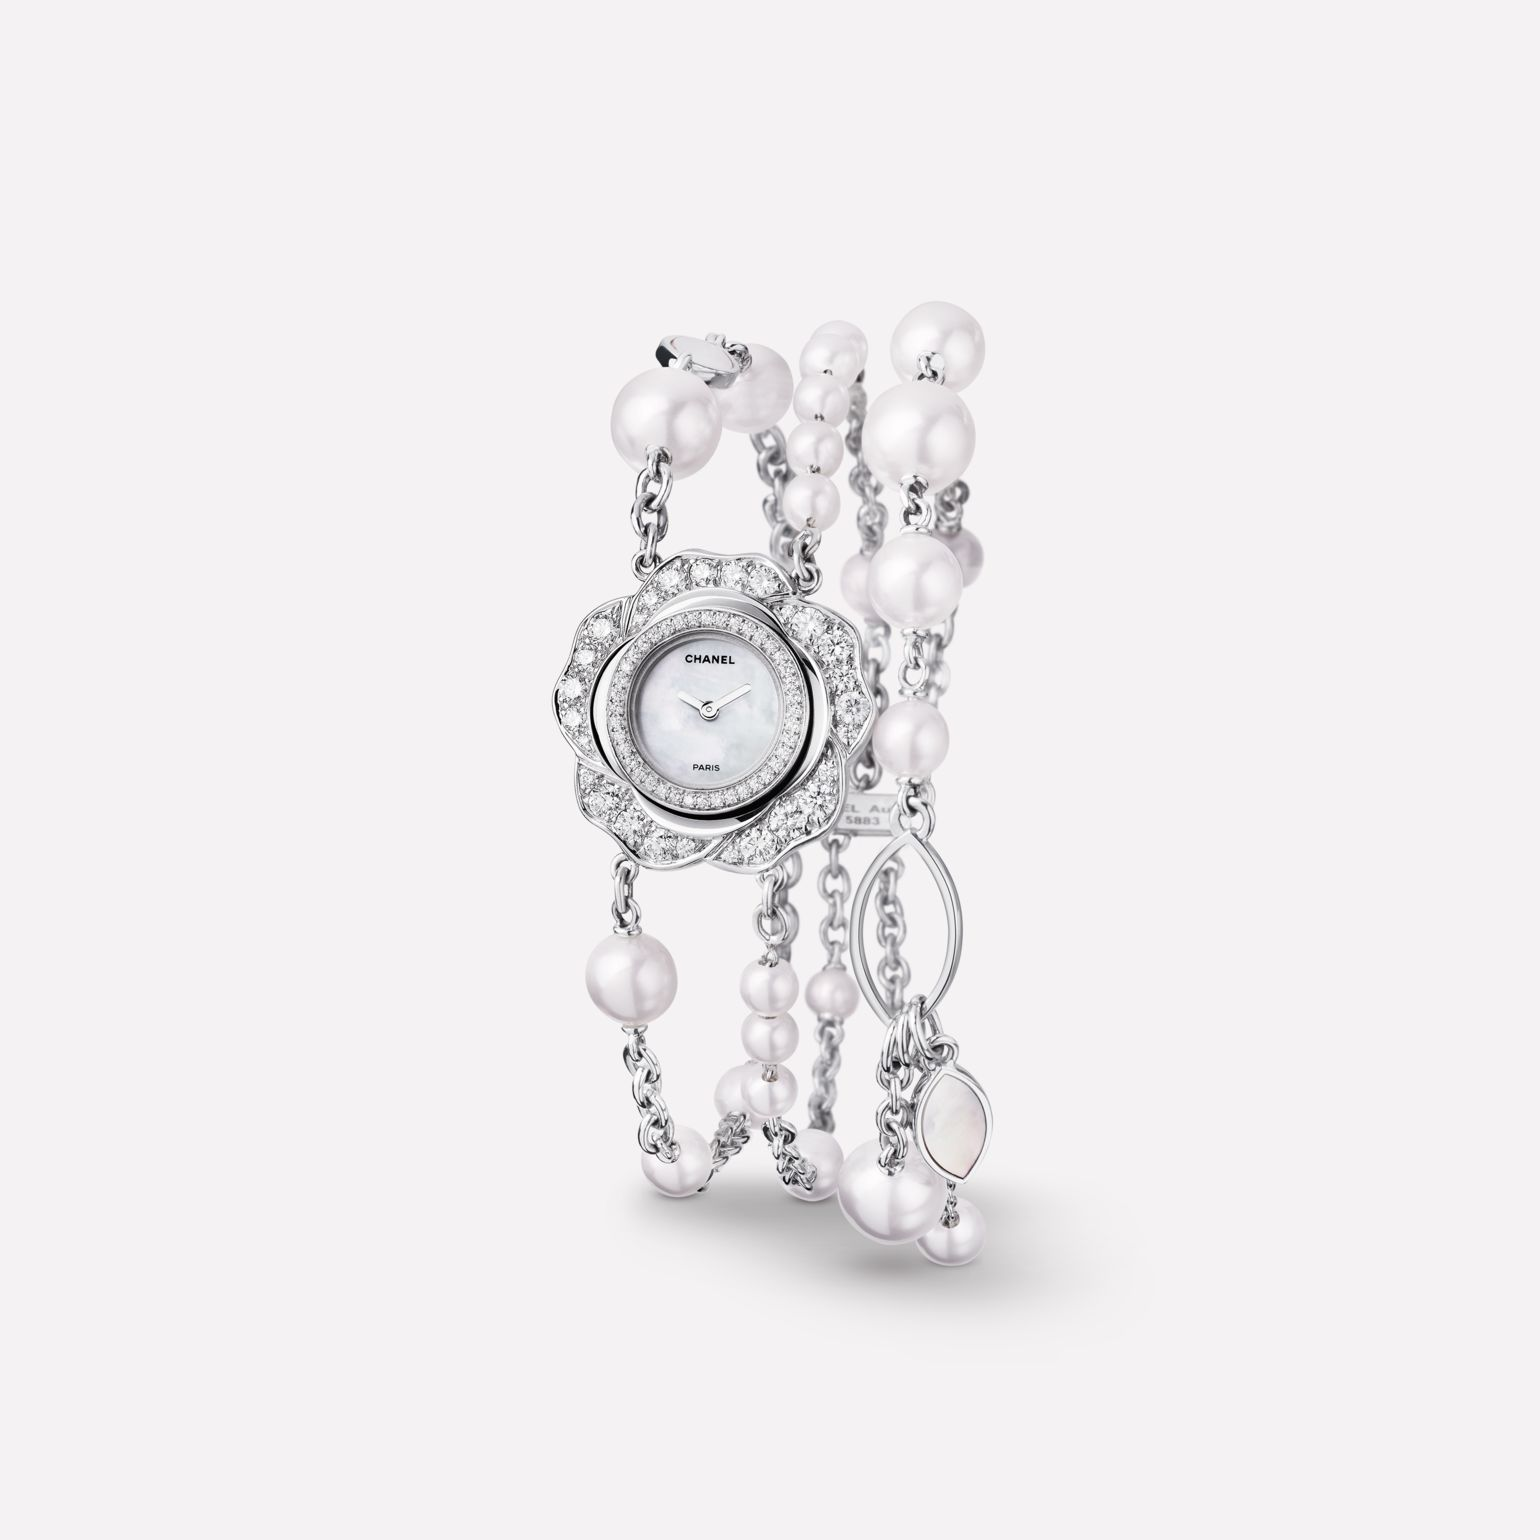 Camélia Jewelry Watch Secret watch with camellia bud motif in 18K white gold, diamonds, and cultured pearls